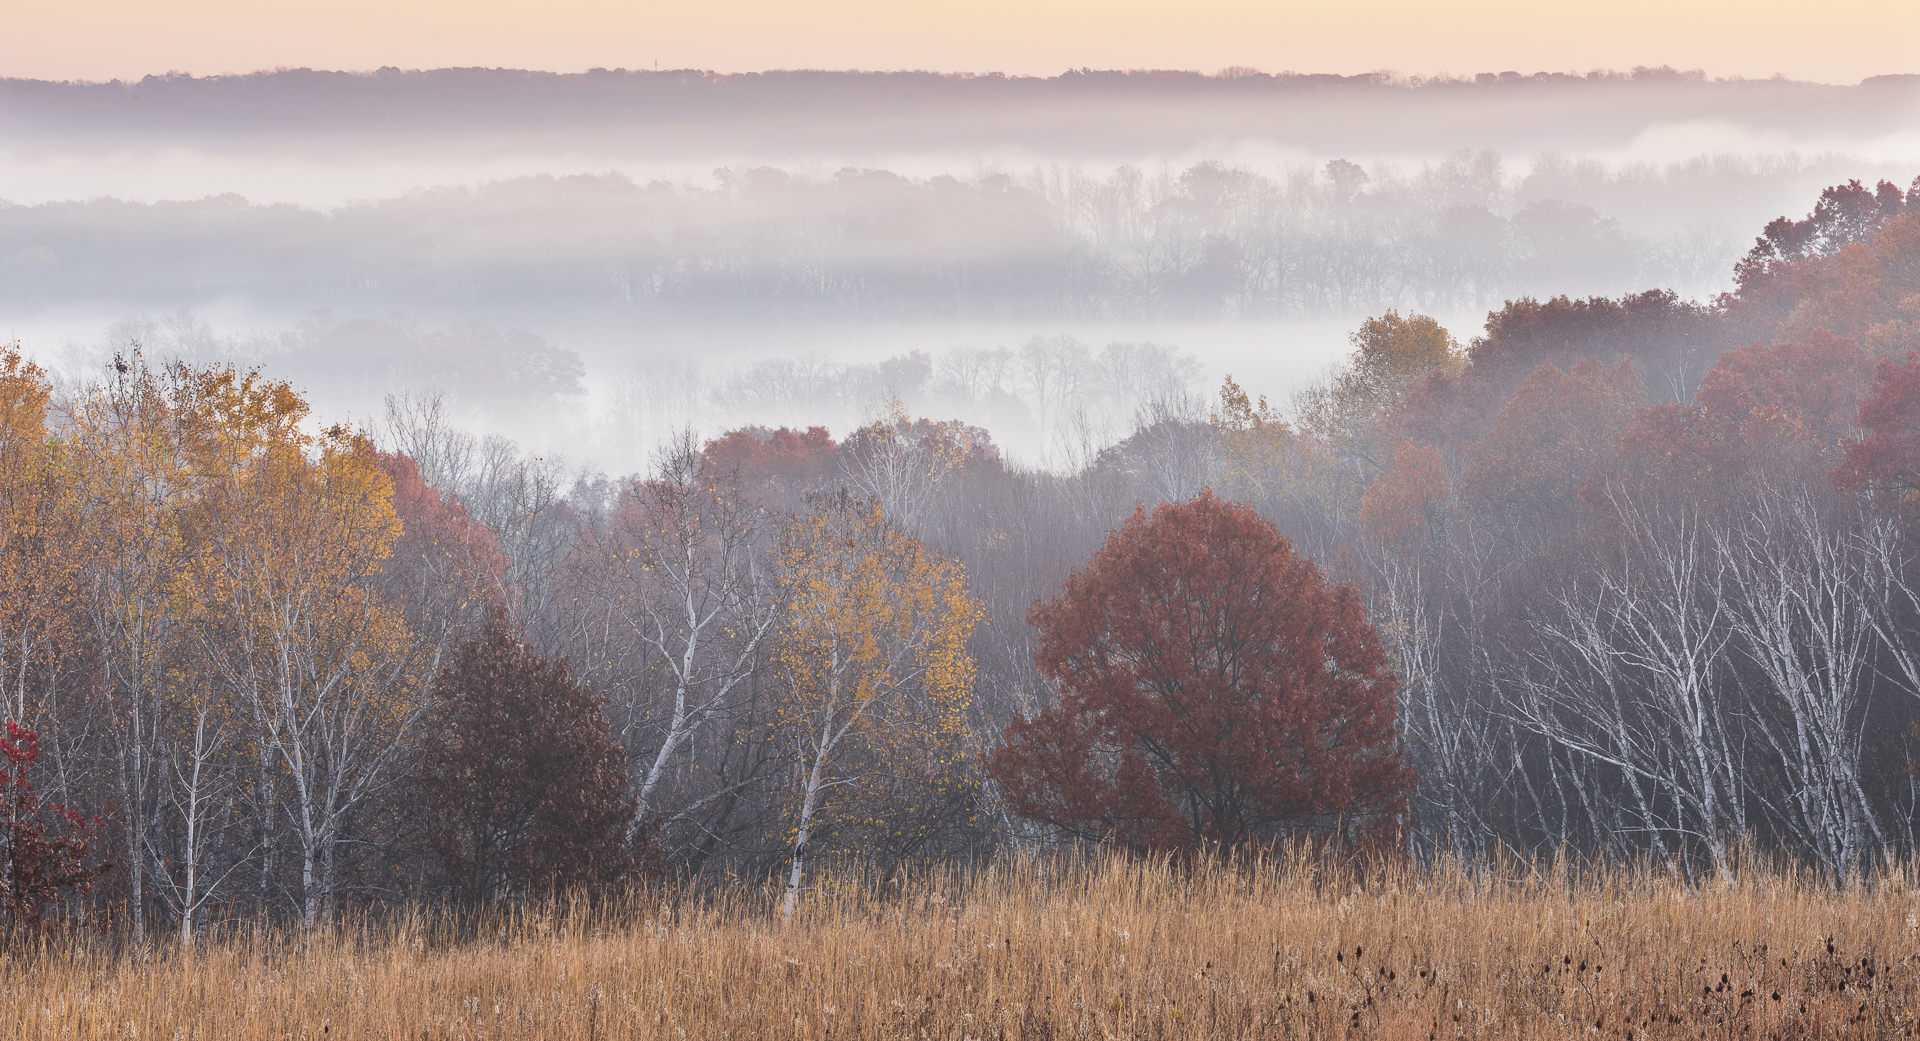 Morning fog shrouds the St. Croix river valley